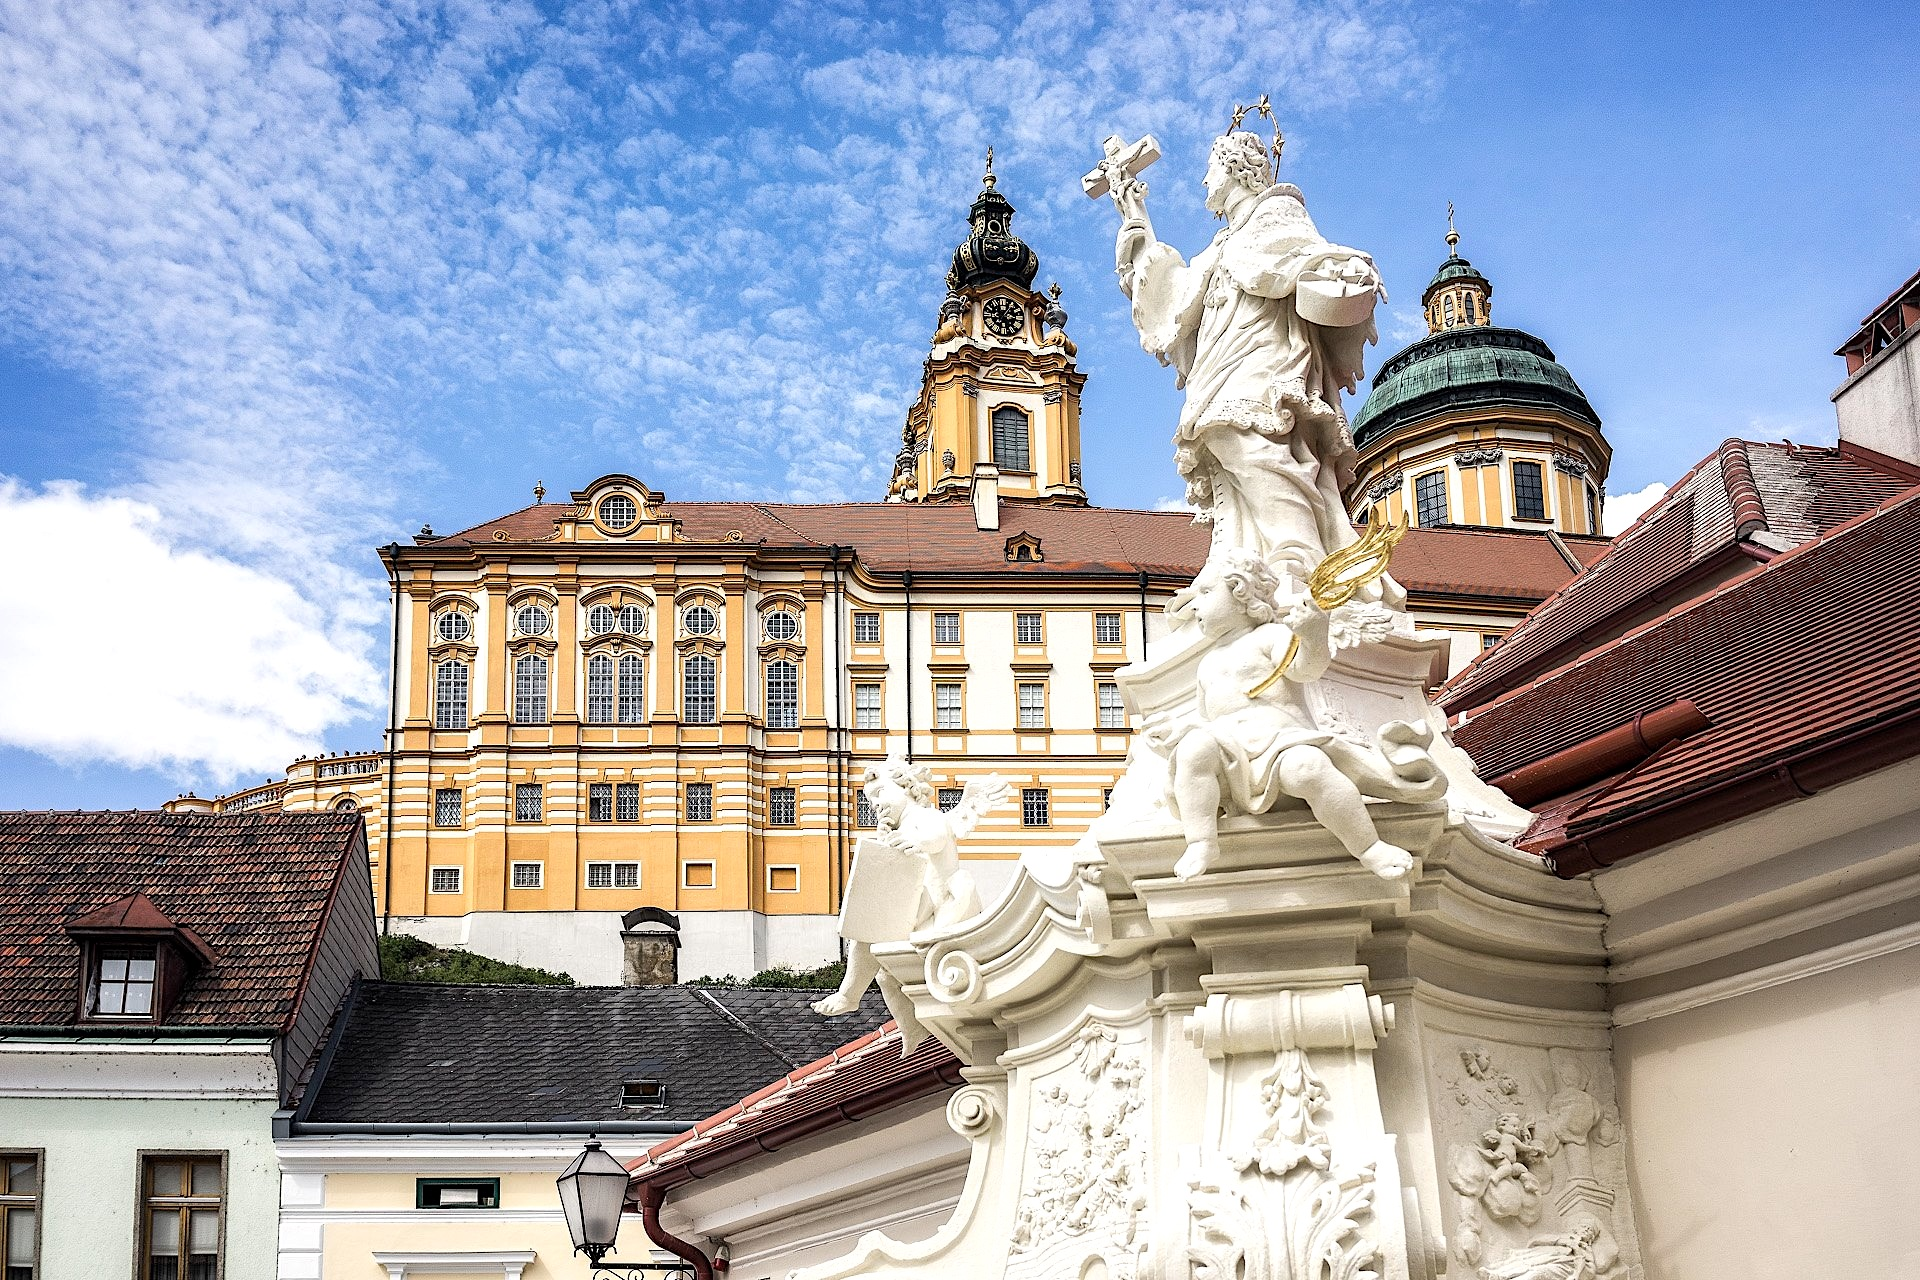 Melk, Austria, history, architecture, baroque, daytrip, private tour, local guide